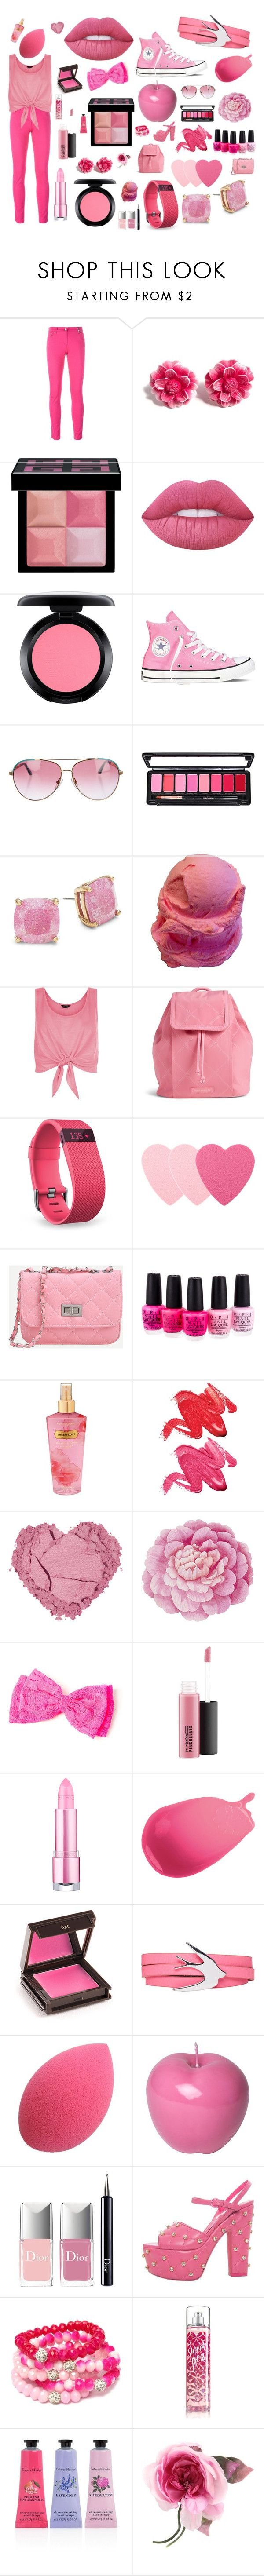 """""""pretty life"""" by the-pink-poppy on Polyvore featuring Kenzo, Tarina Tarantino, Givenchy, Lime Crime, MAC Cosmetics, Converse, Minnie Rose, Kate Spade, New Look and Vera Bradley"""